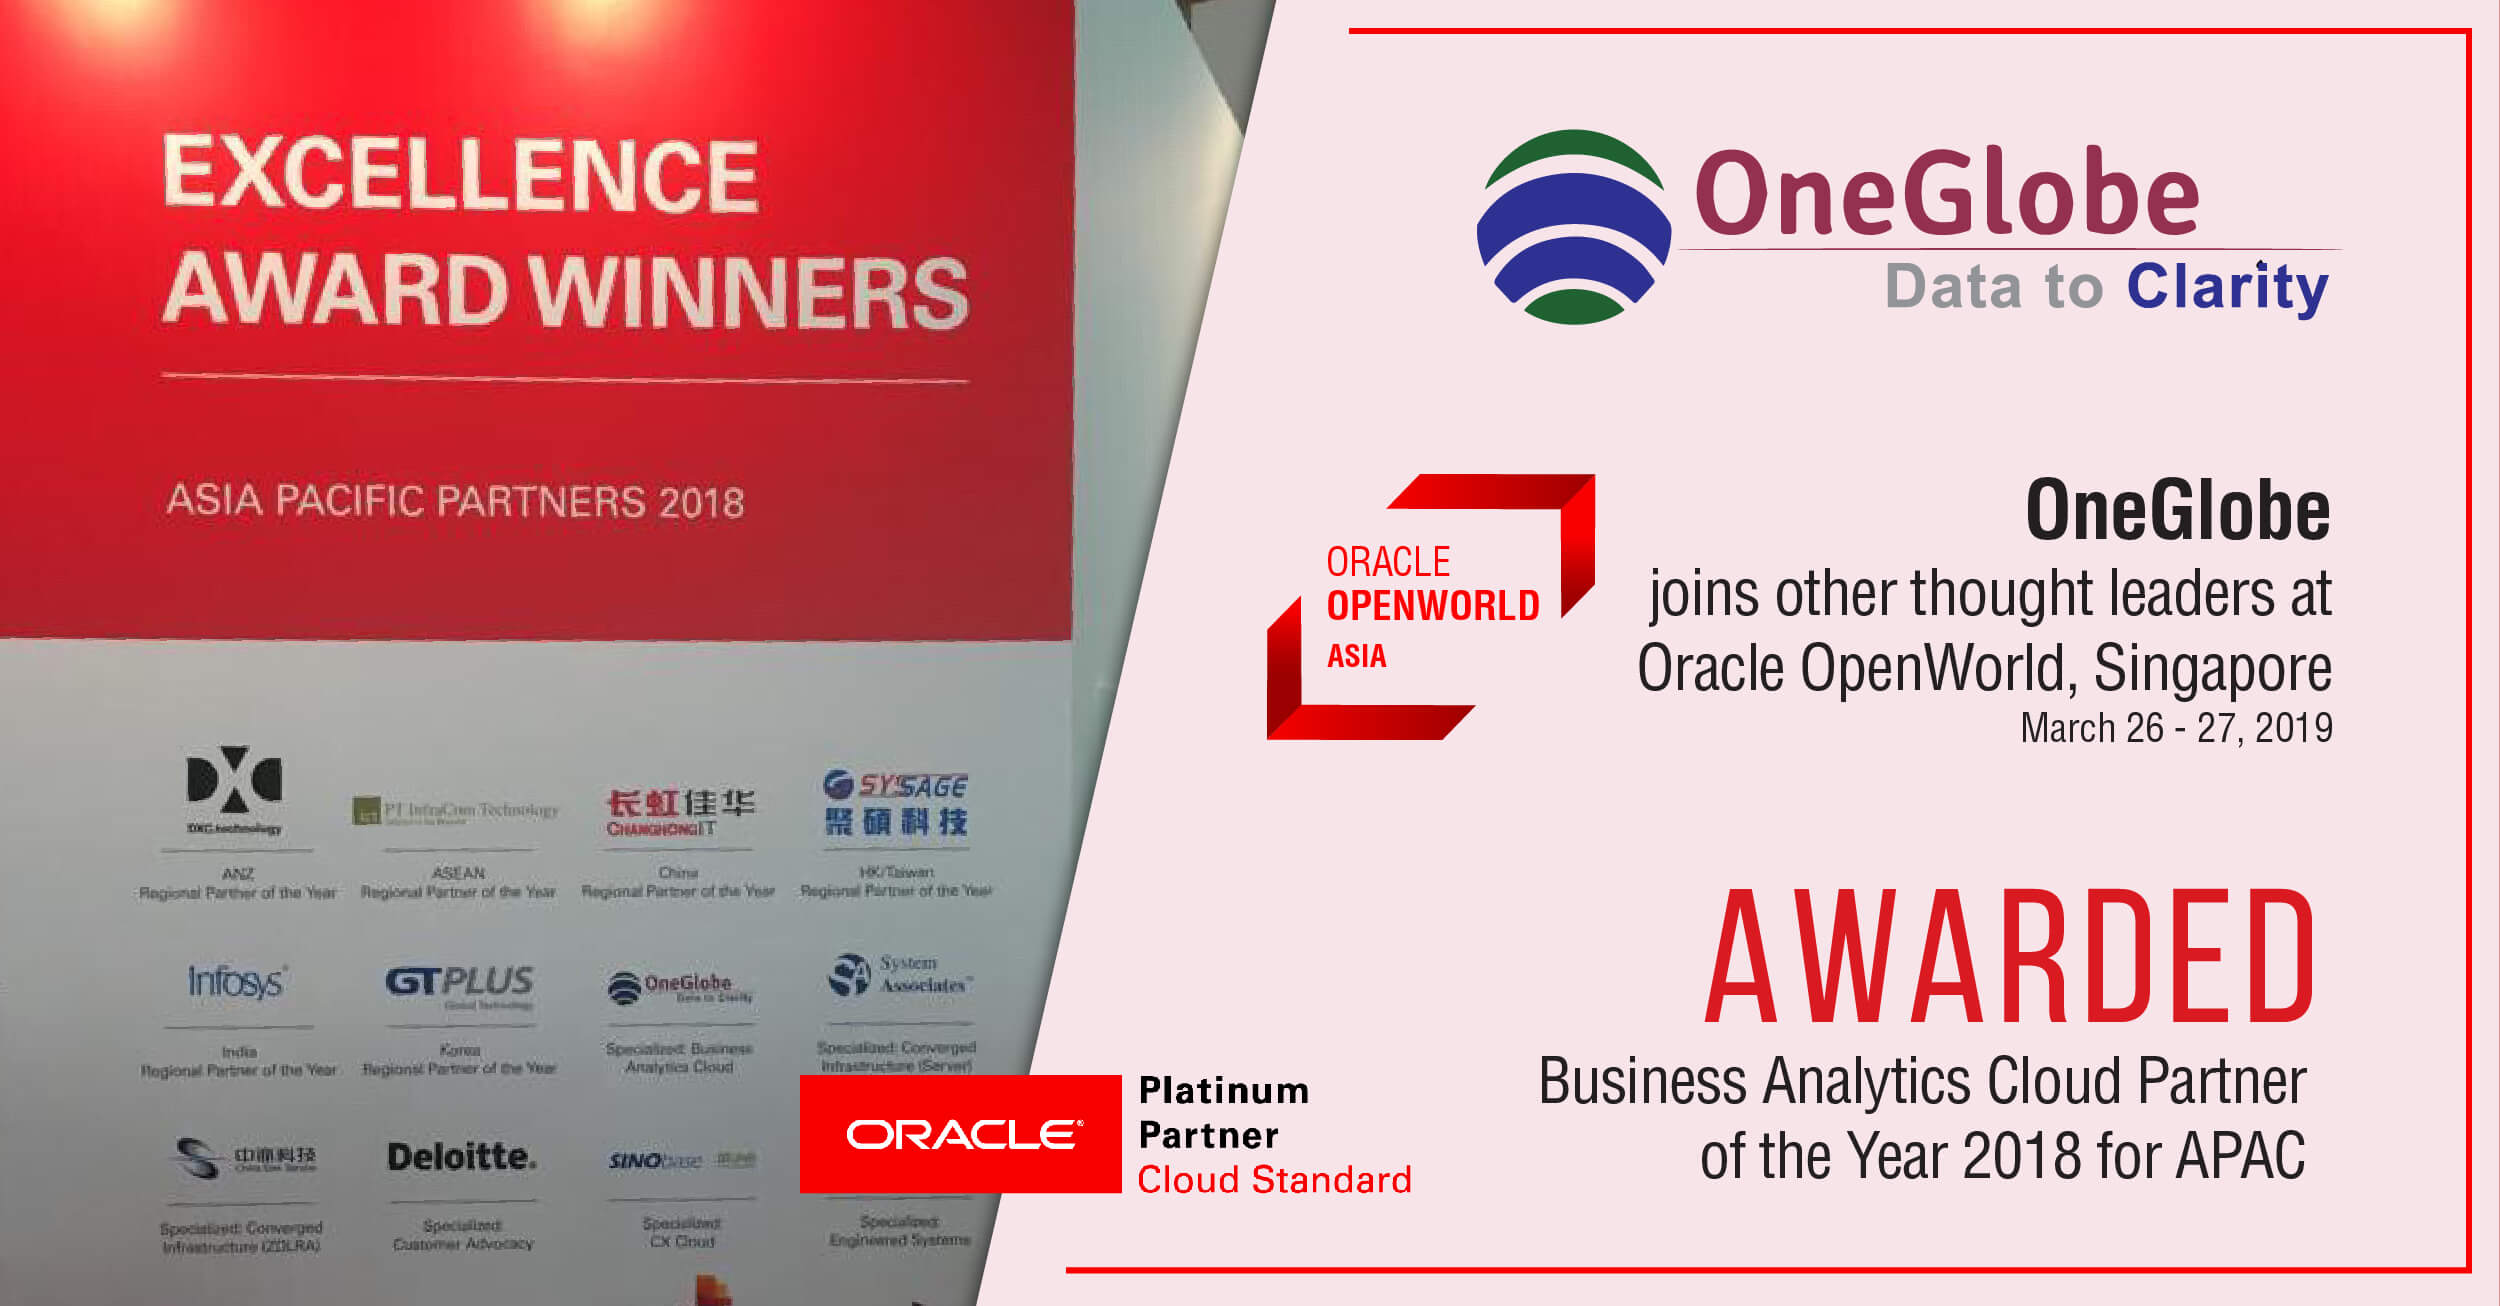 OneGlobe-at-Oracle-OpenWorld-Singapore-2019